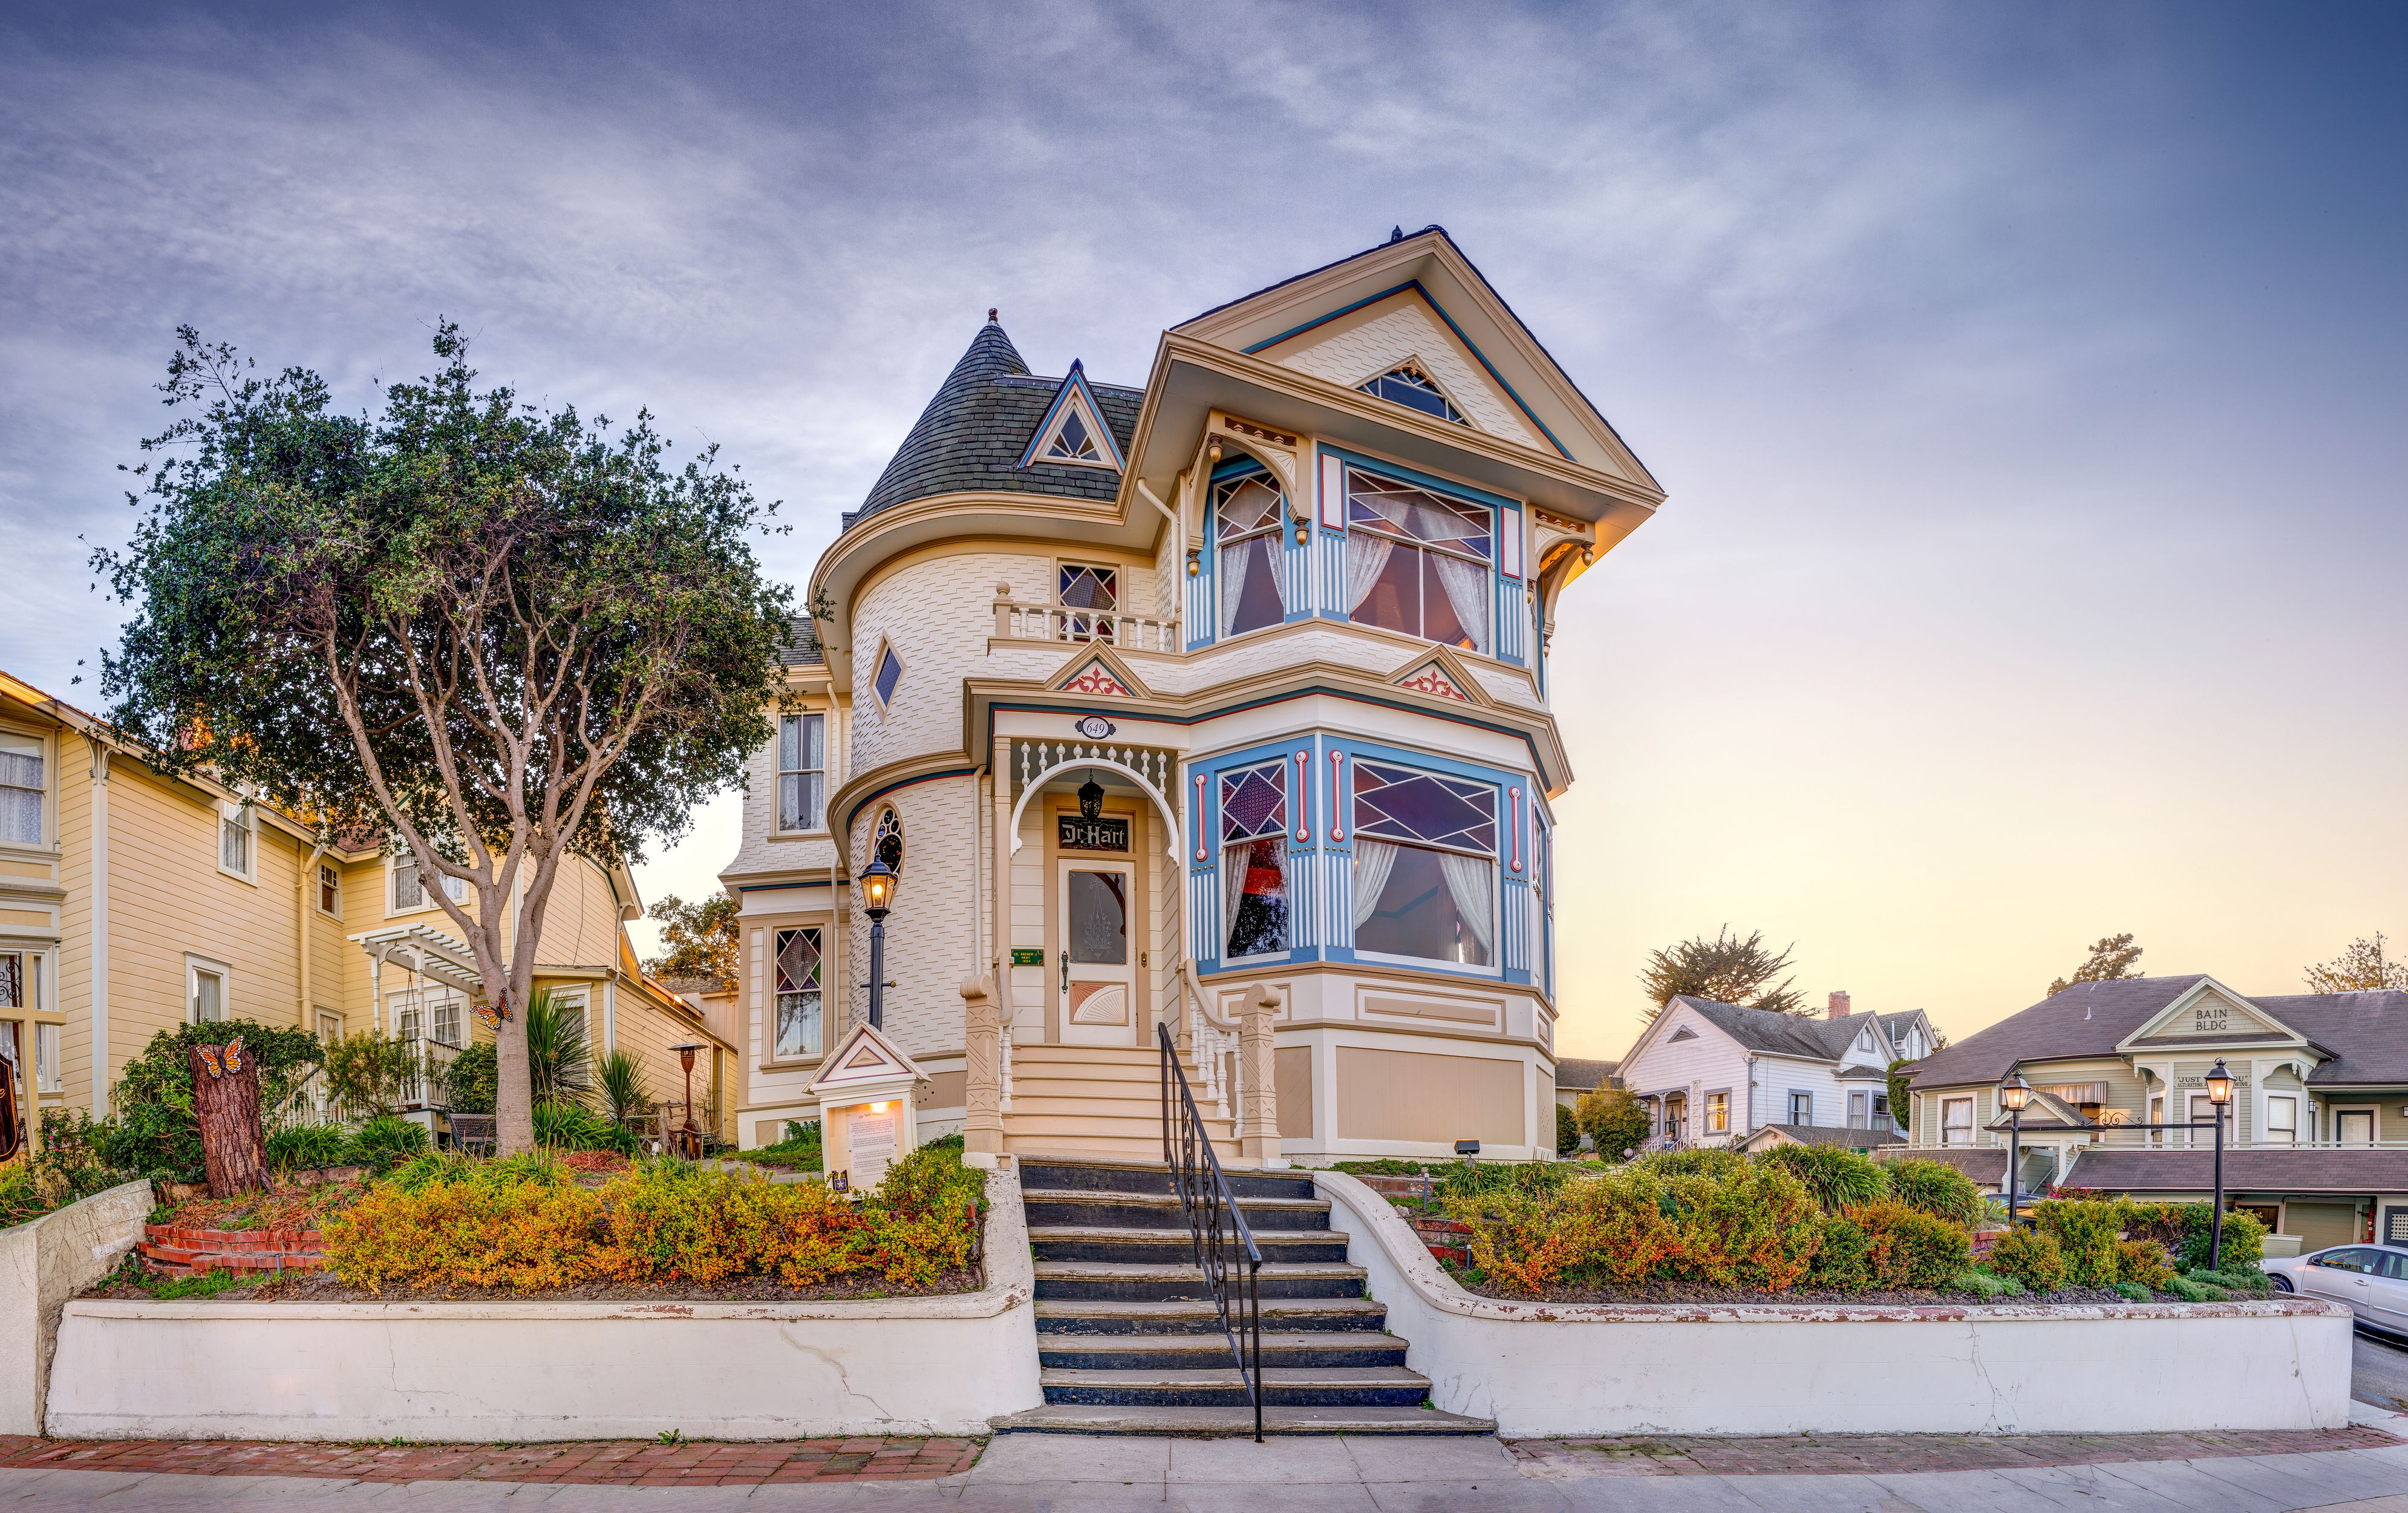 Dr. Hart's Mansion in Pacific Grove, California